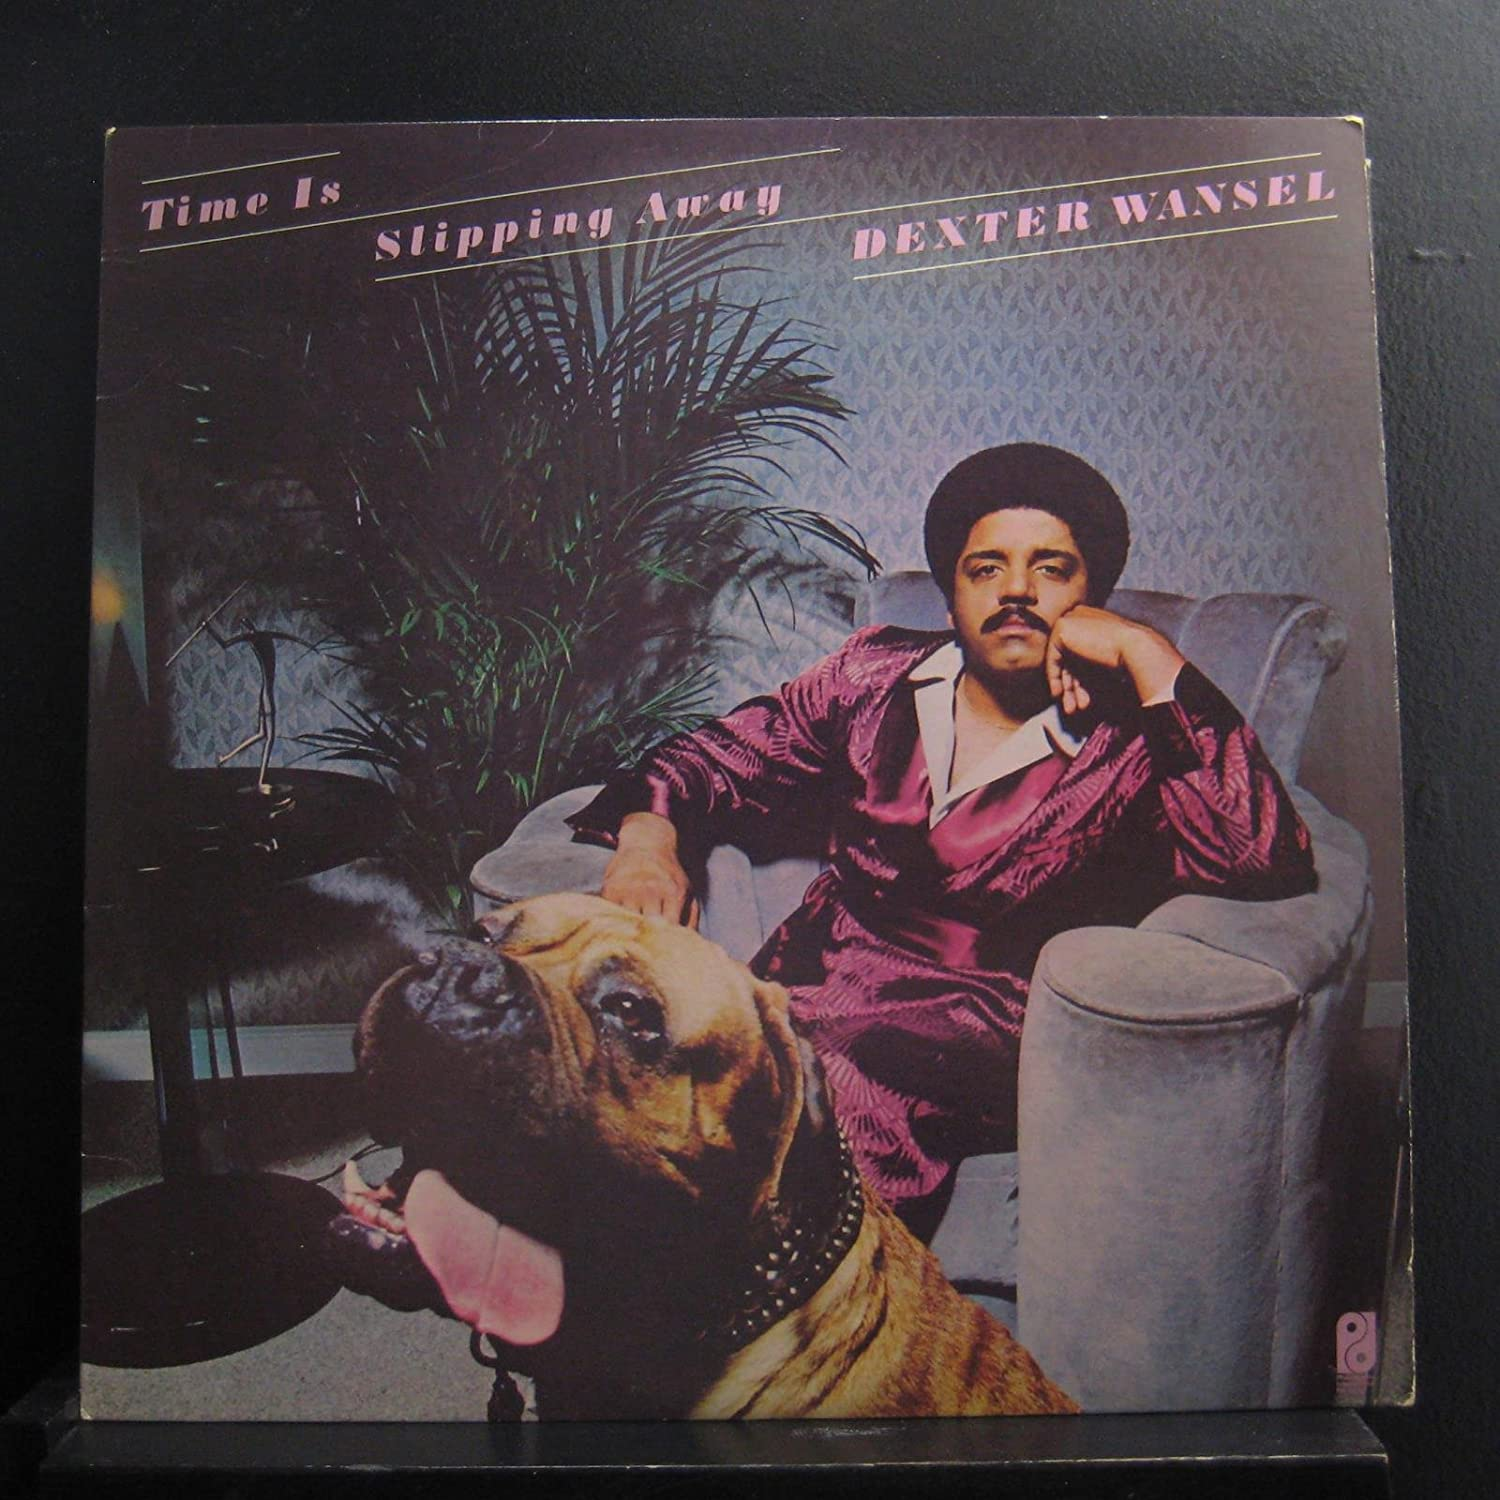 Dexter Wansel - Time Is Ranking TOP7 Slipping Animer and price revision Record Lp Vinyl Away